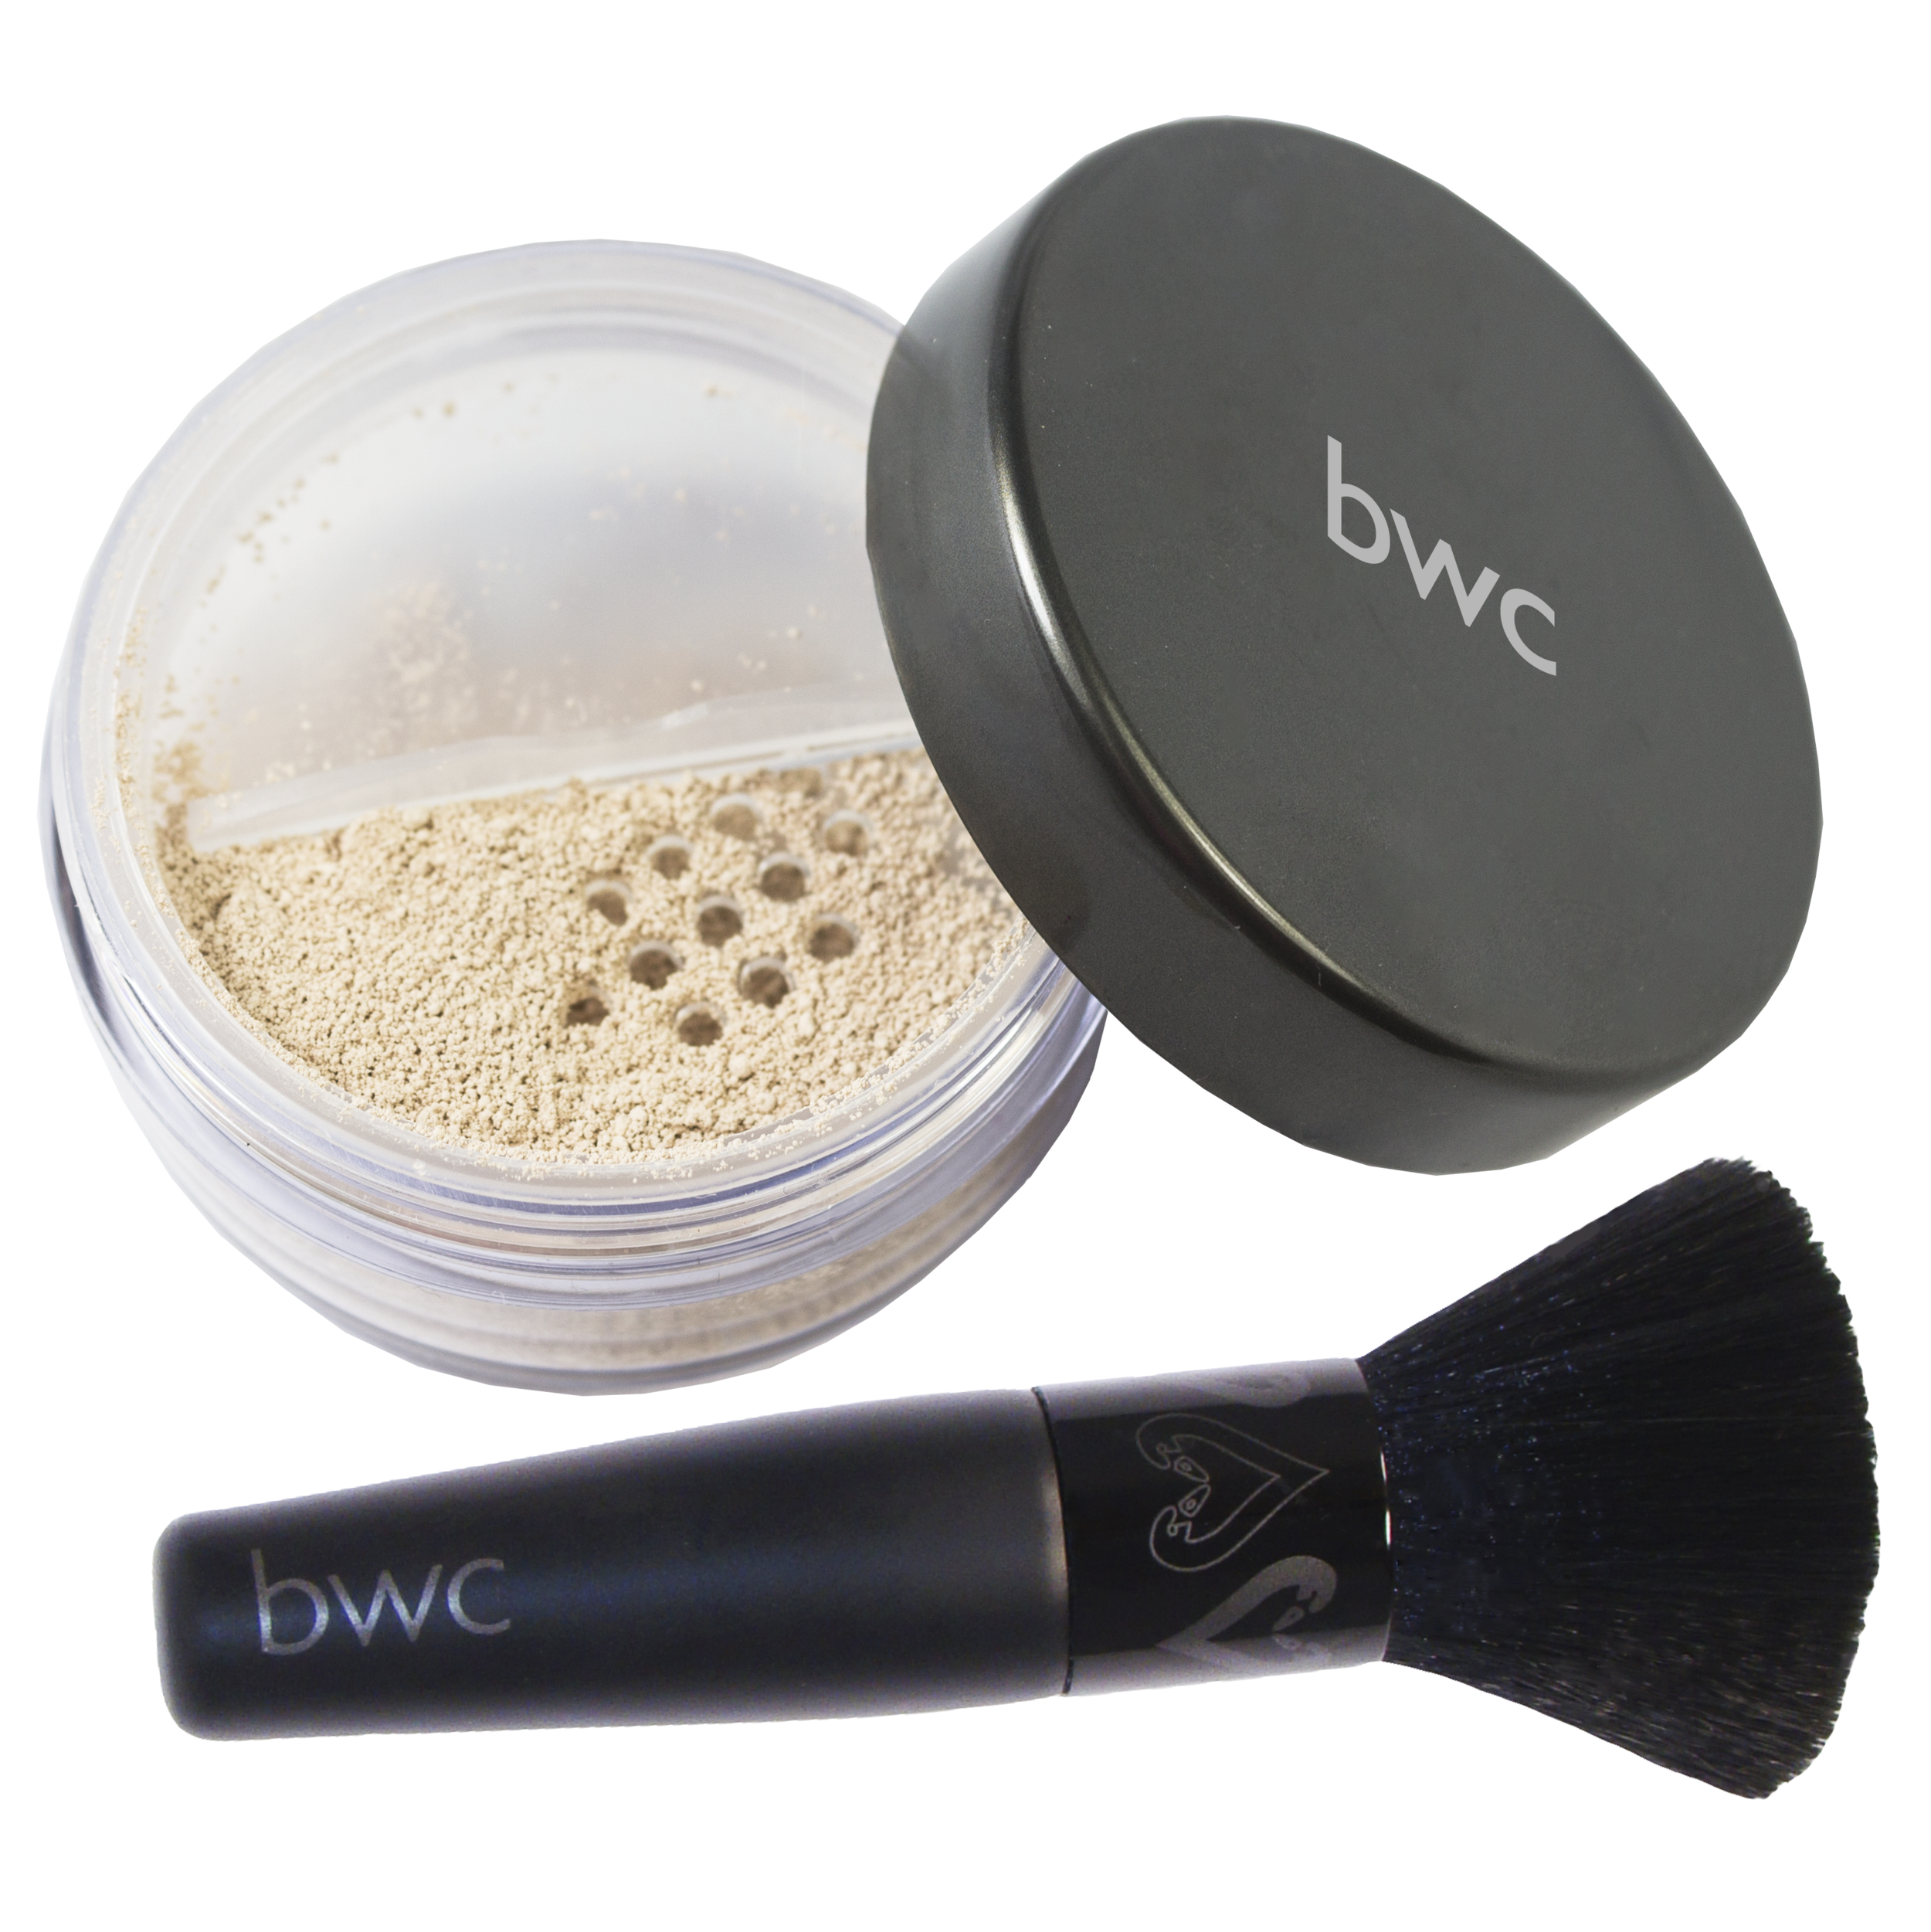 bwc Powder Foundation Pale Fox open with mesh and Brush (1 of 1).png